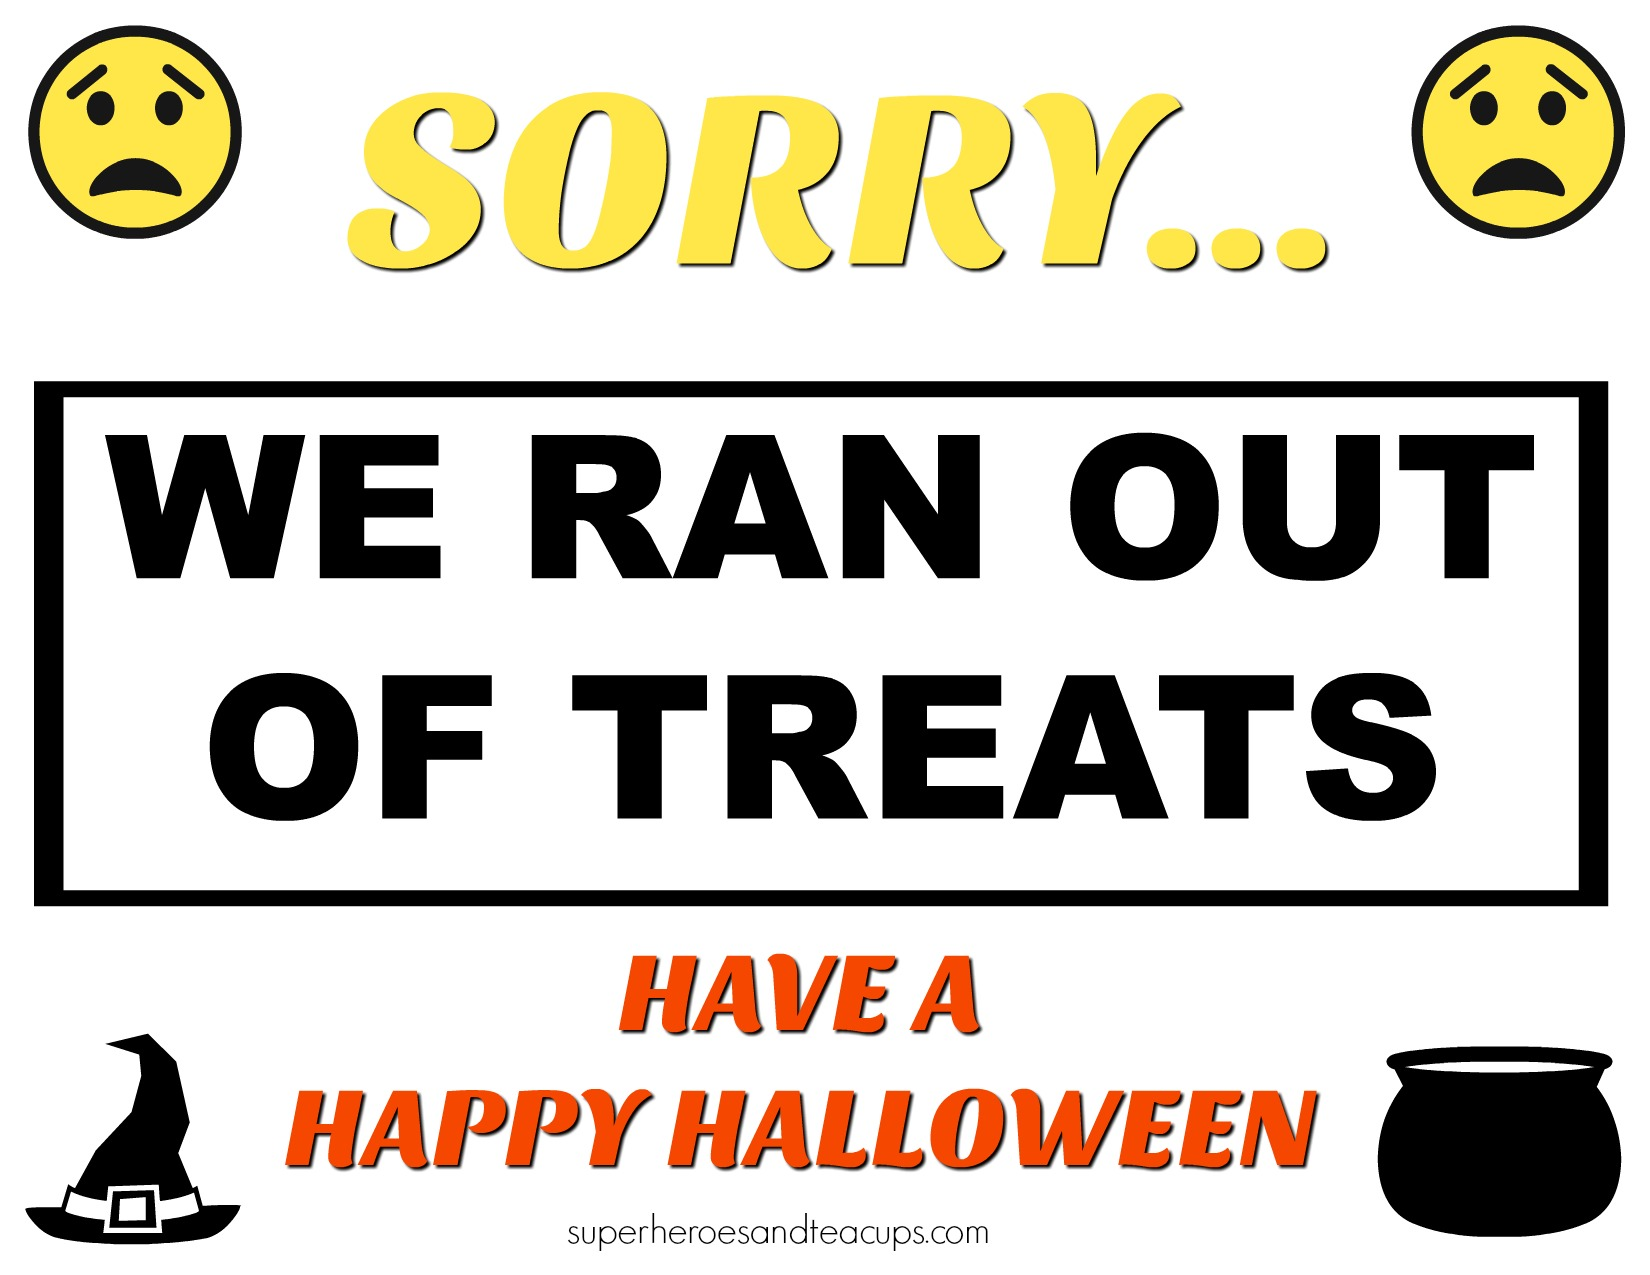 Free Printable Out of Treats Halloween Sign